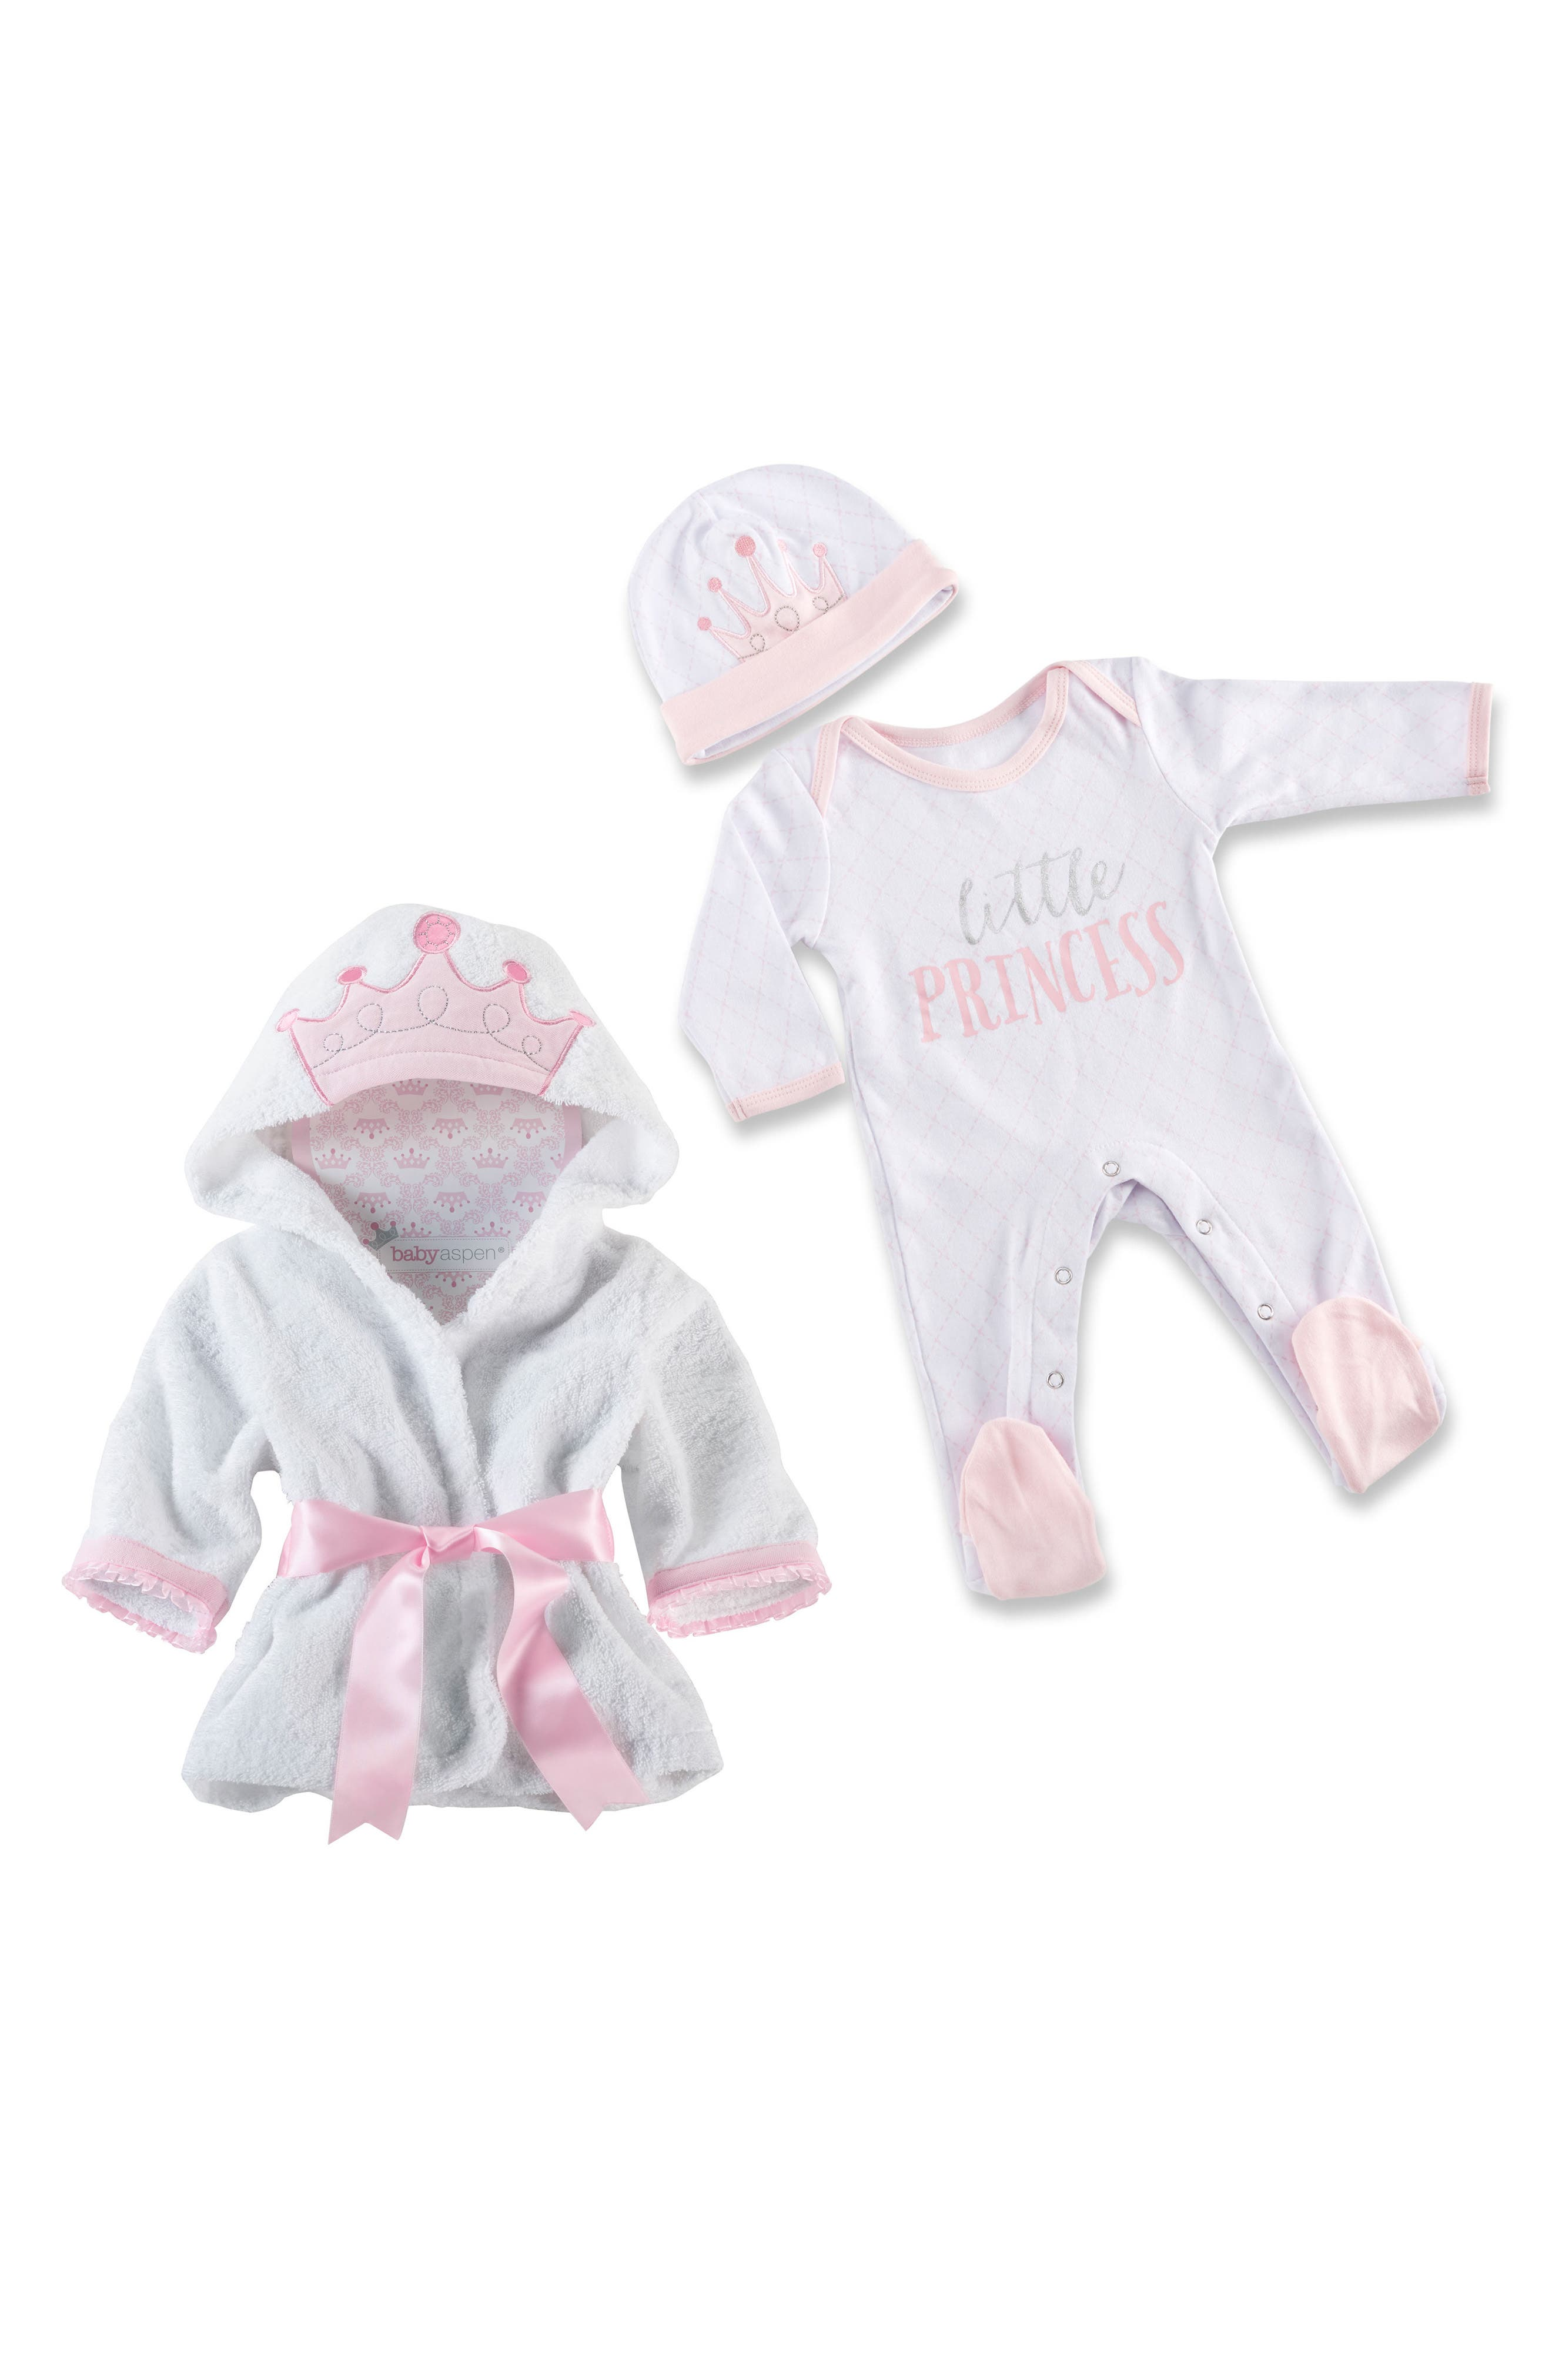 Little Princess Plush Robe, One-Piece Pajamas & Hat Set,                         Main,                         color, Pink/ White